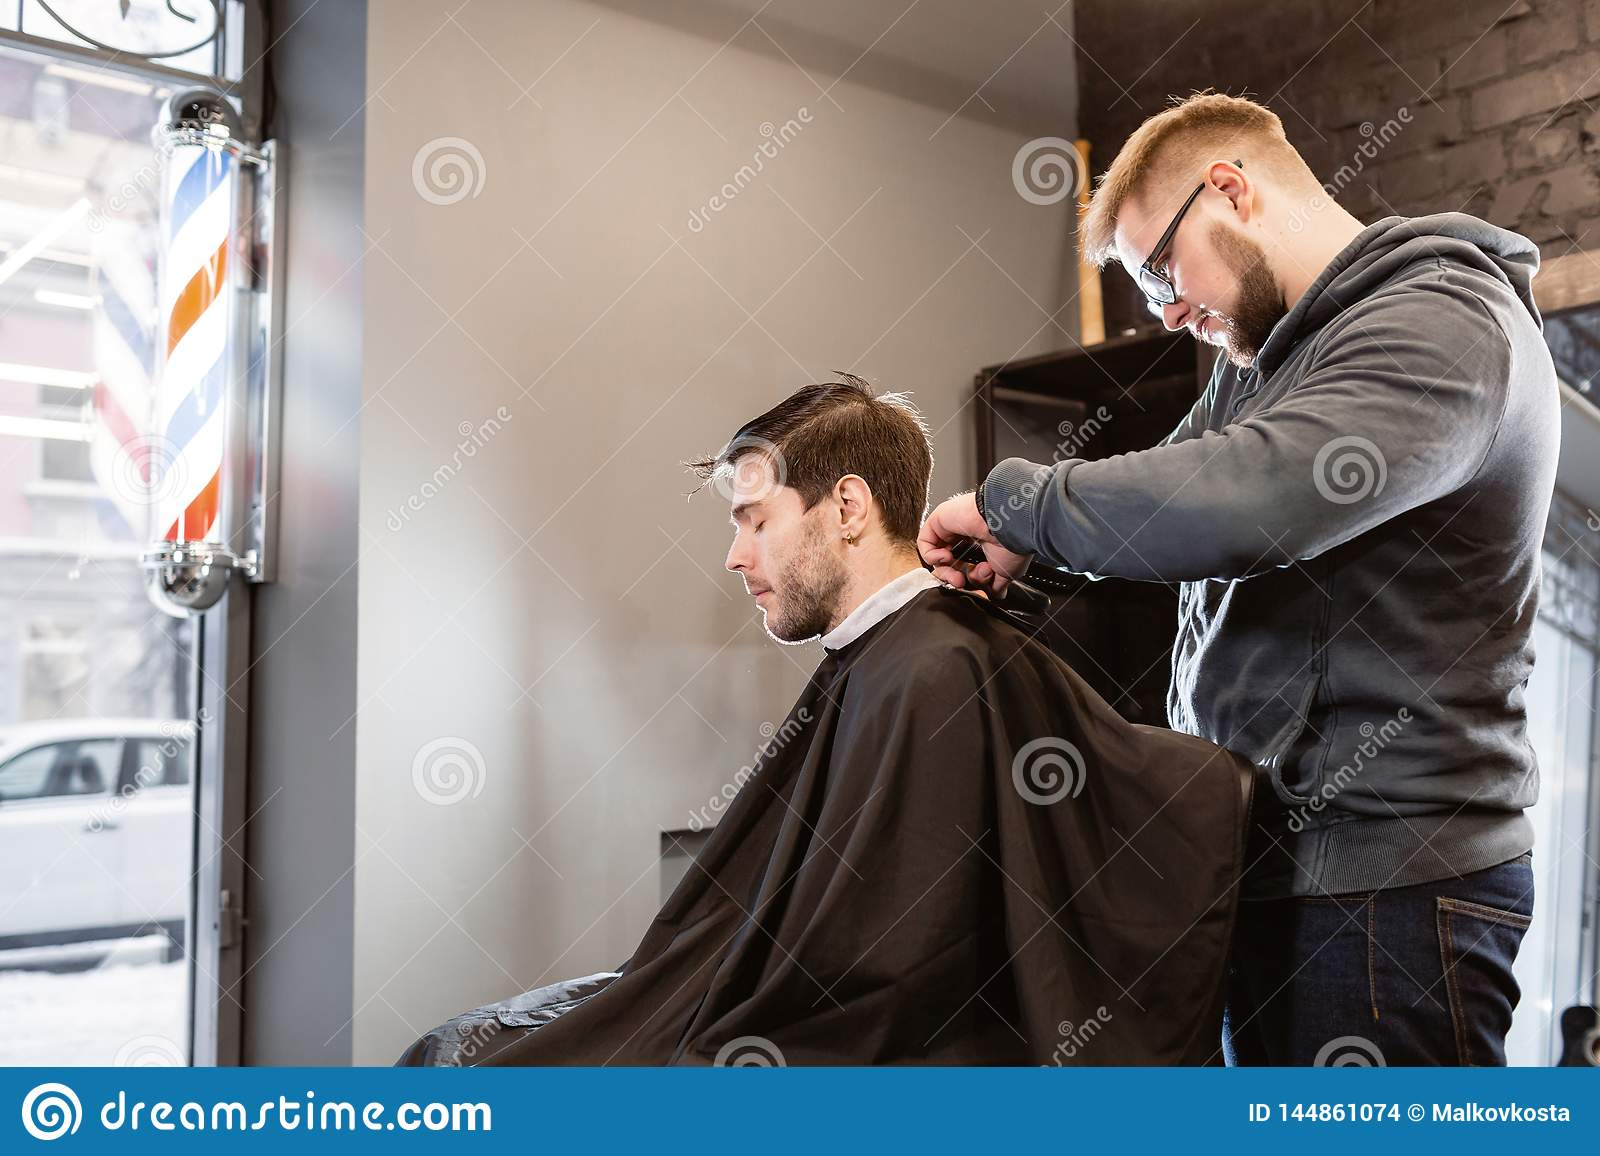 Master cuts hair and beard of men in the barbershop, hairdresser makes hairstyle for a young man. Barber work with